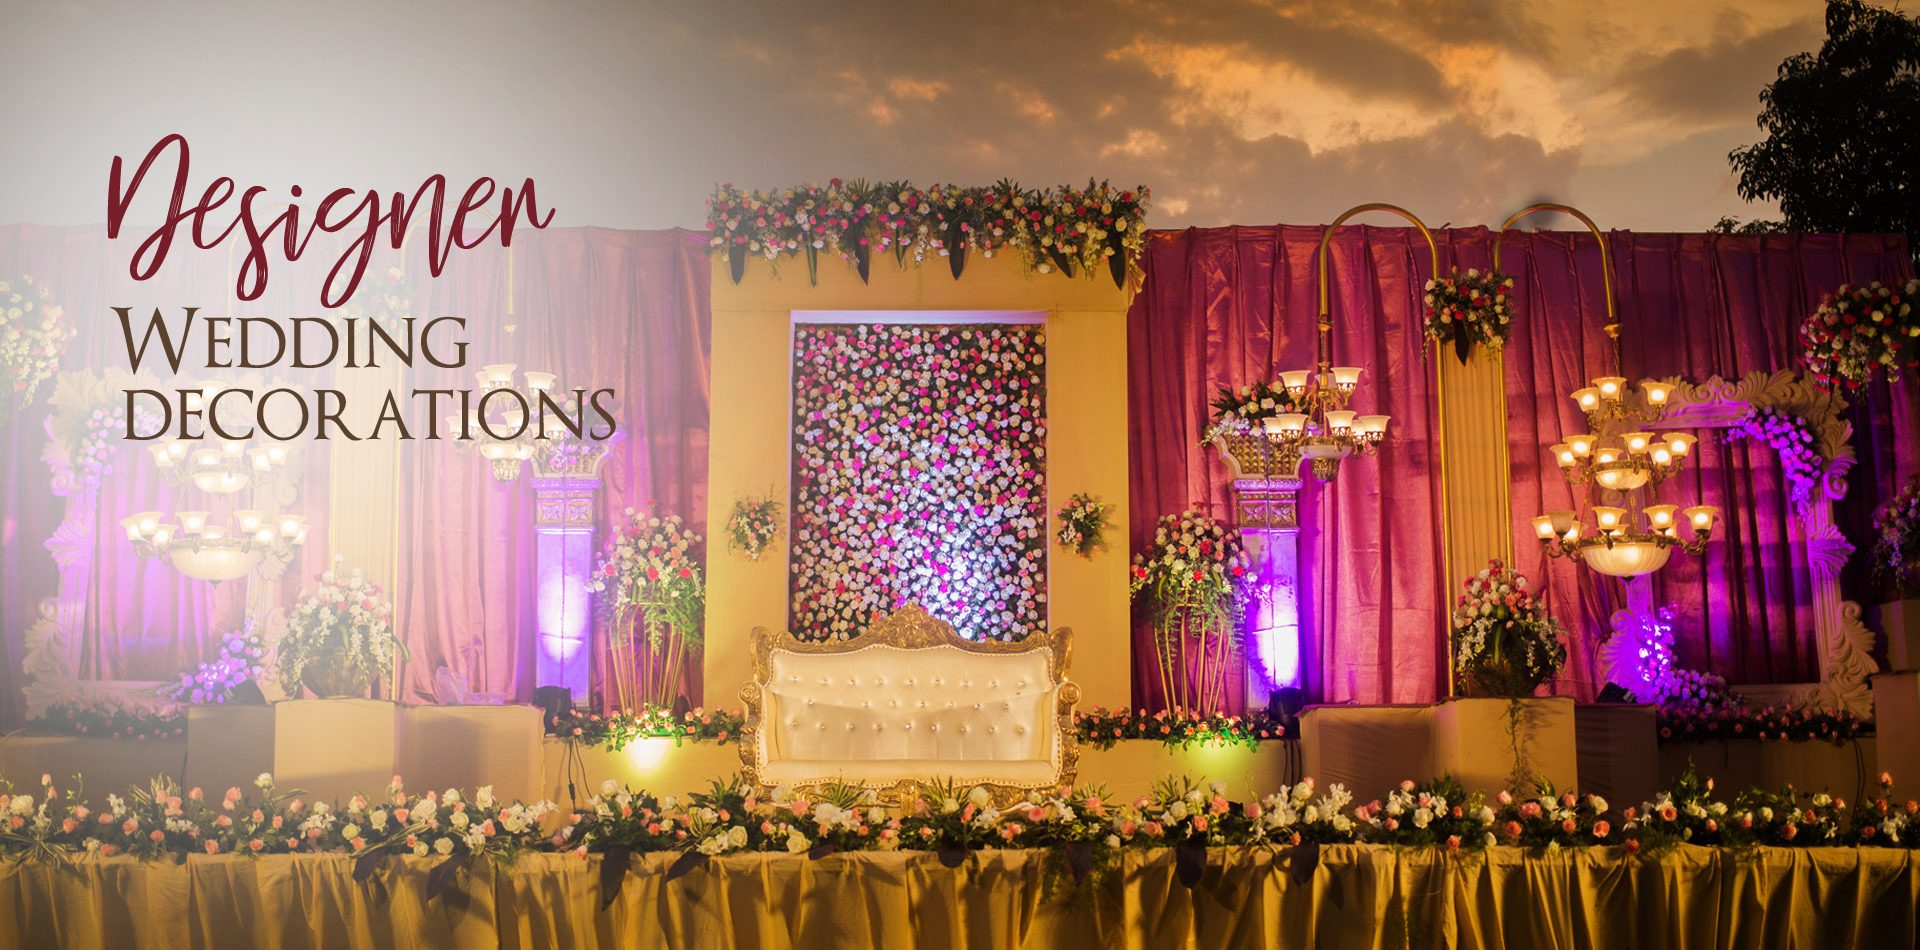 Hire best wedding planner chennai coimbatore tirupur india junglespirit Choice Image